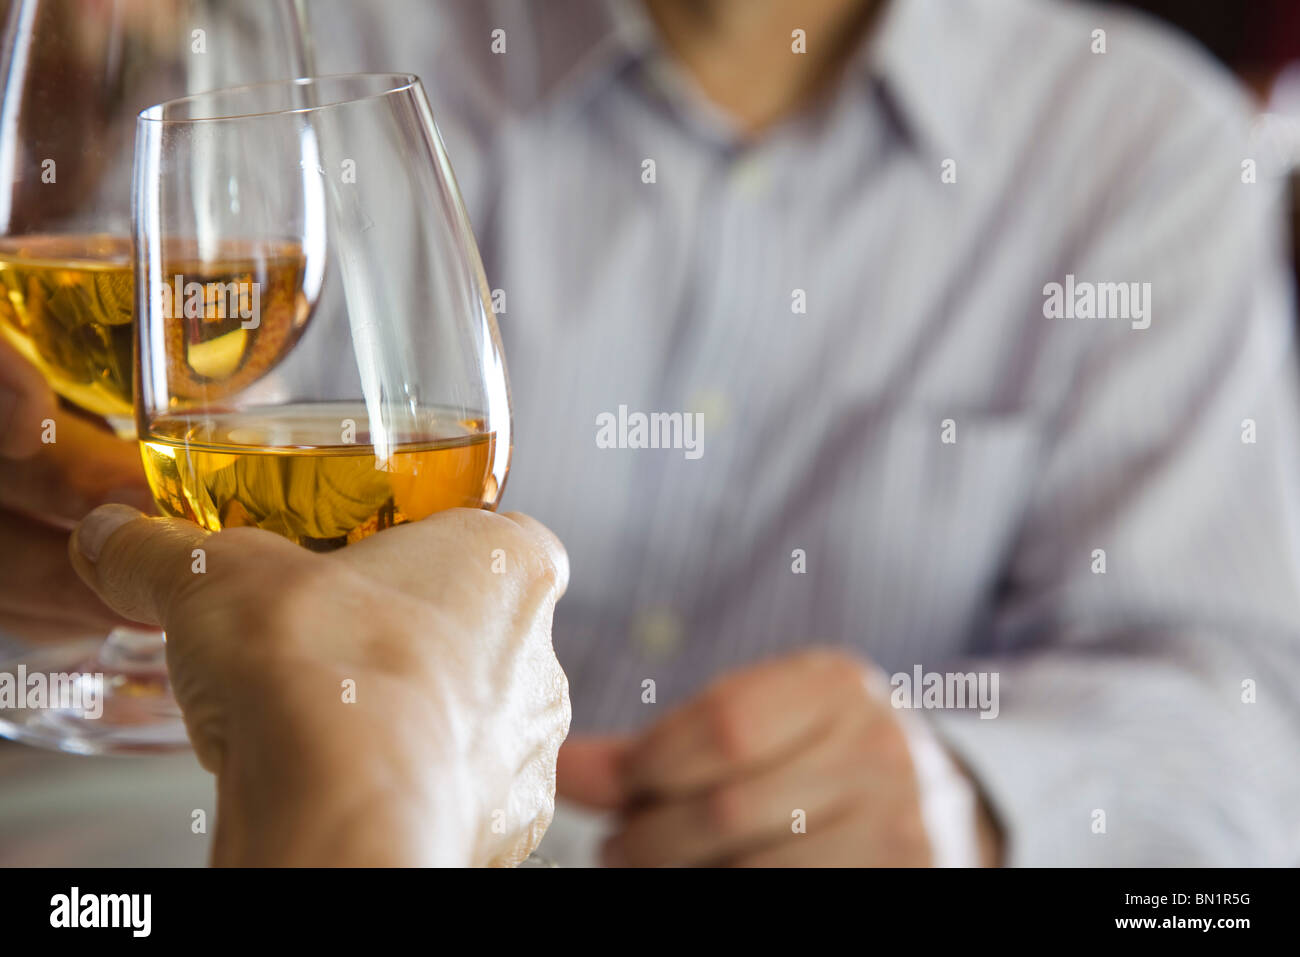 Clinking glasses - Stock Image